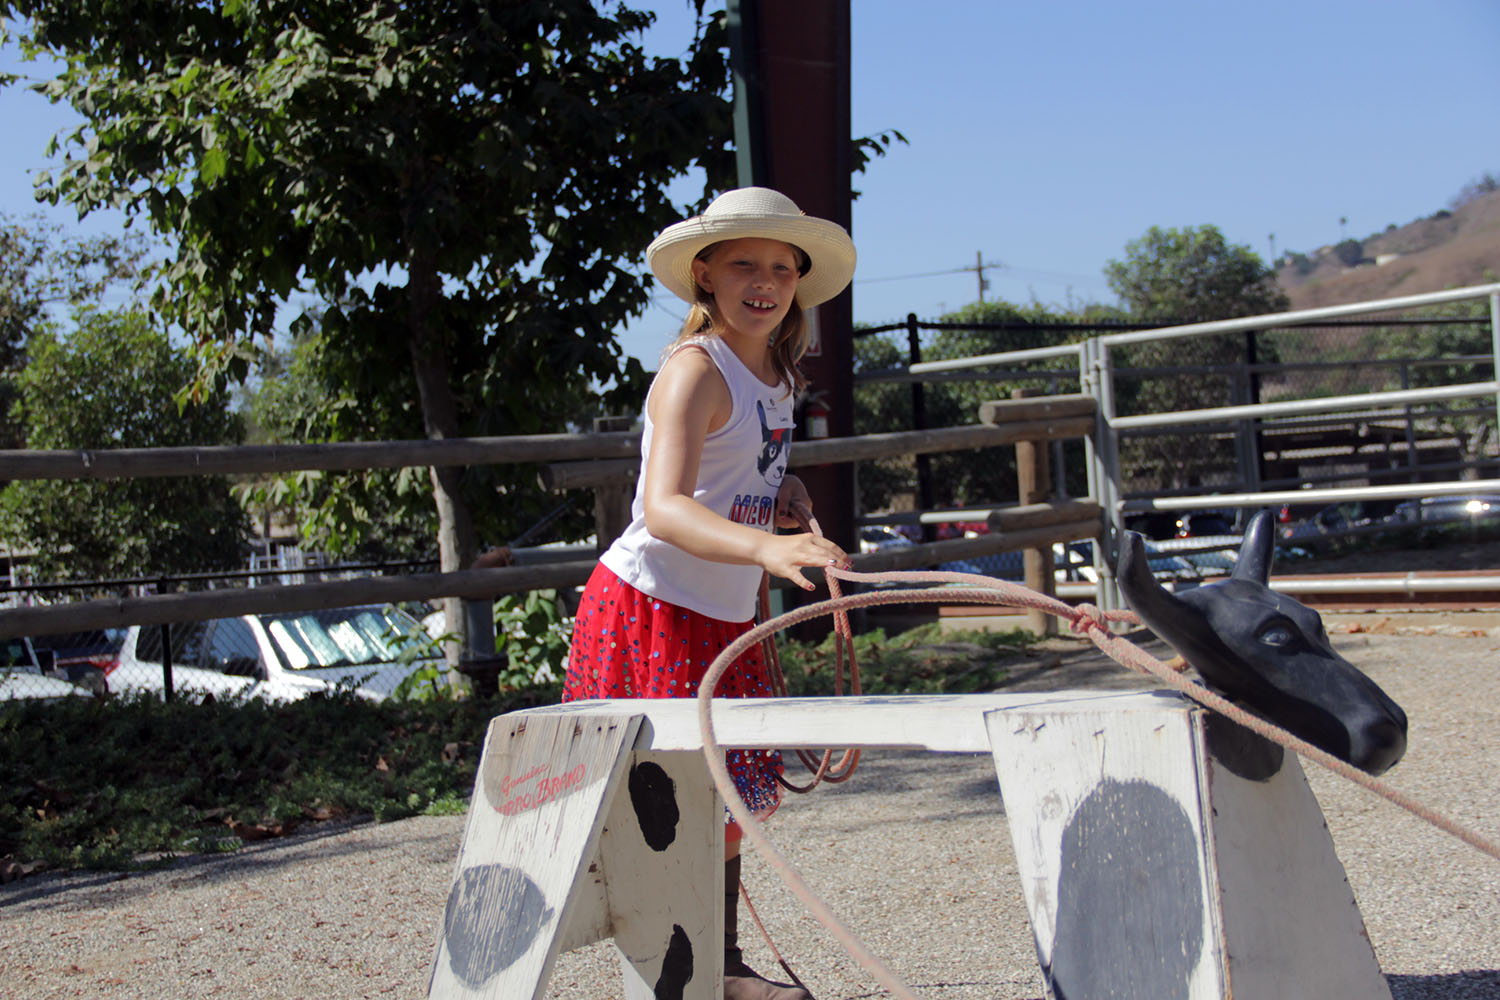 Taking part in the J.F. Shea Therapeutic Riding Center's annual Cowboy Camp on Wednesday, Aug. 14, Lucy Kurtenacker successfully ropes a fake steer. Photo: Shawn Raymundo